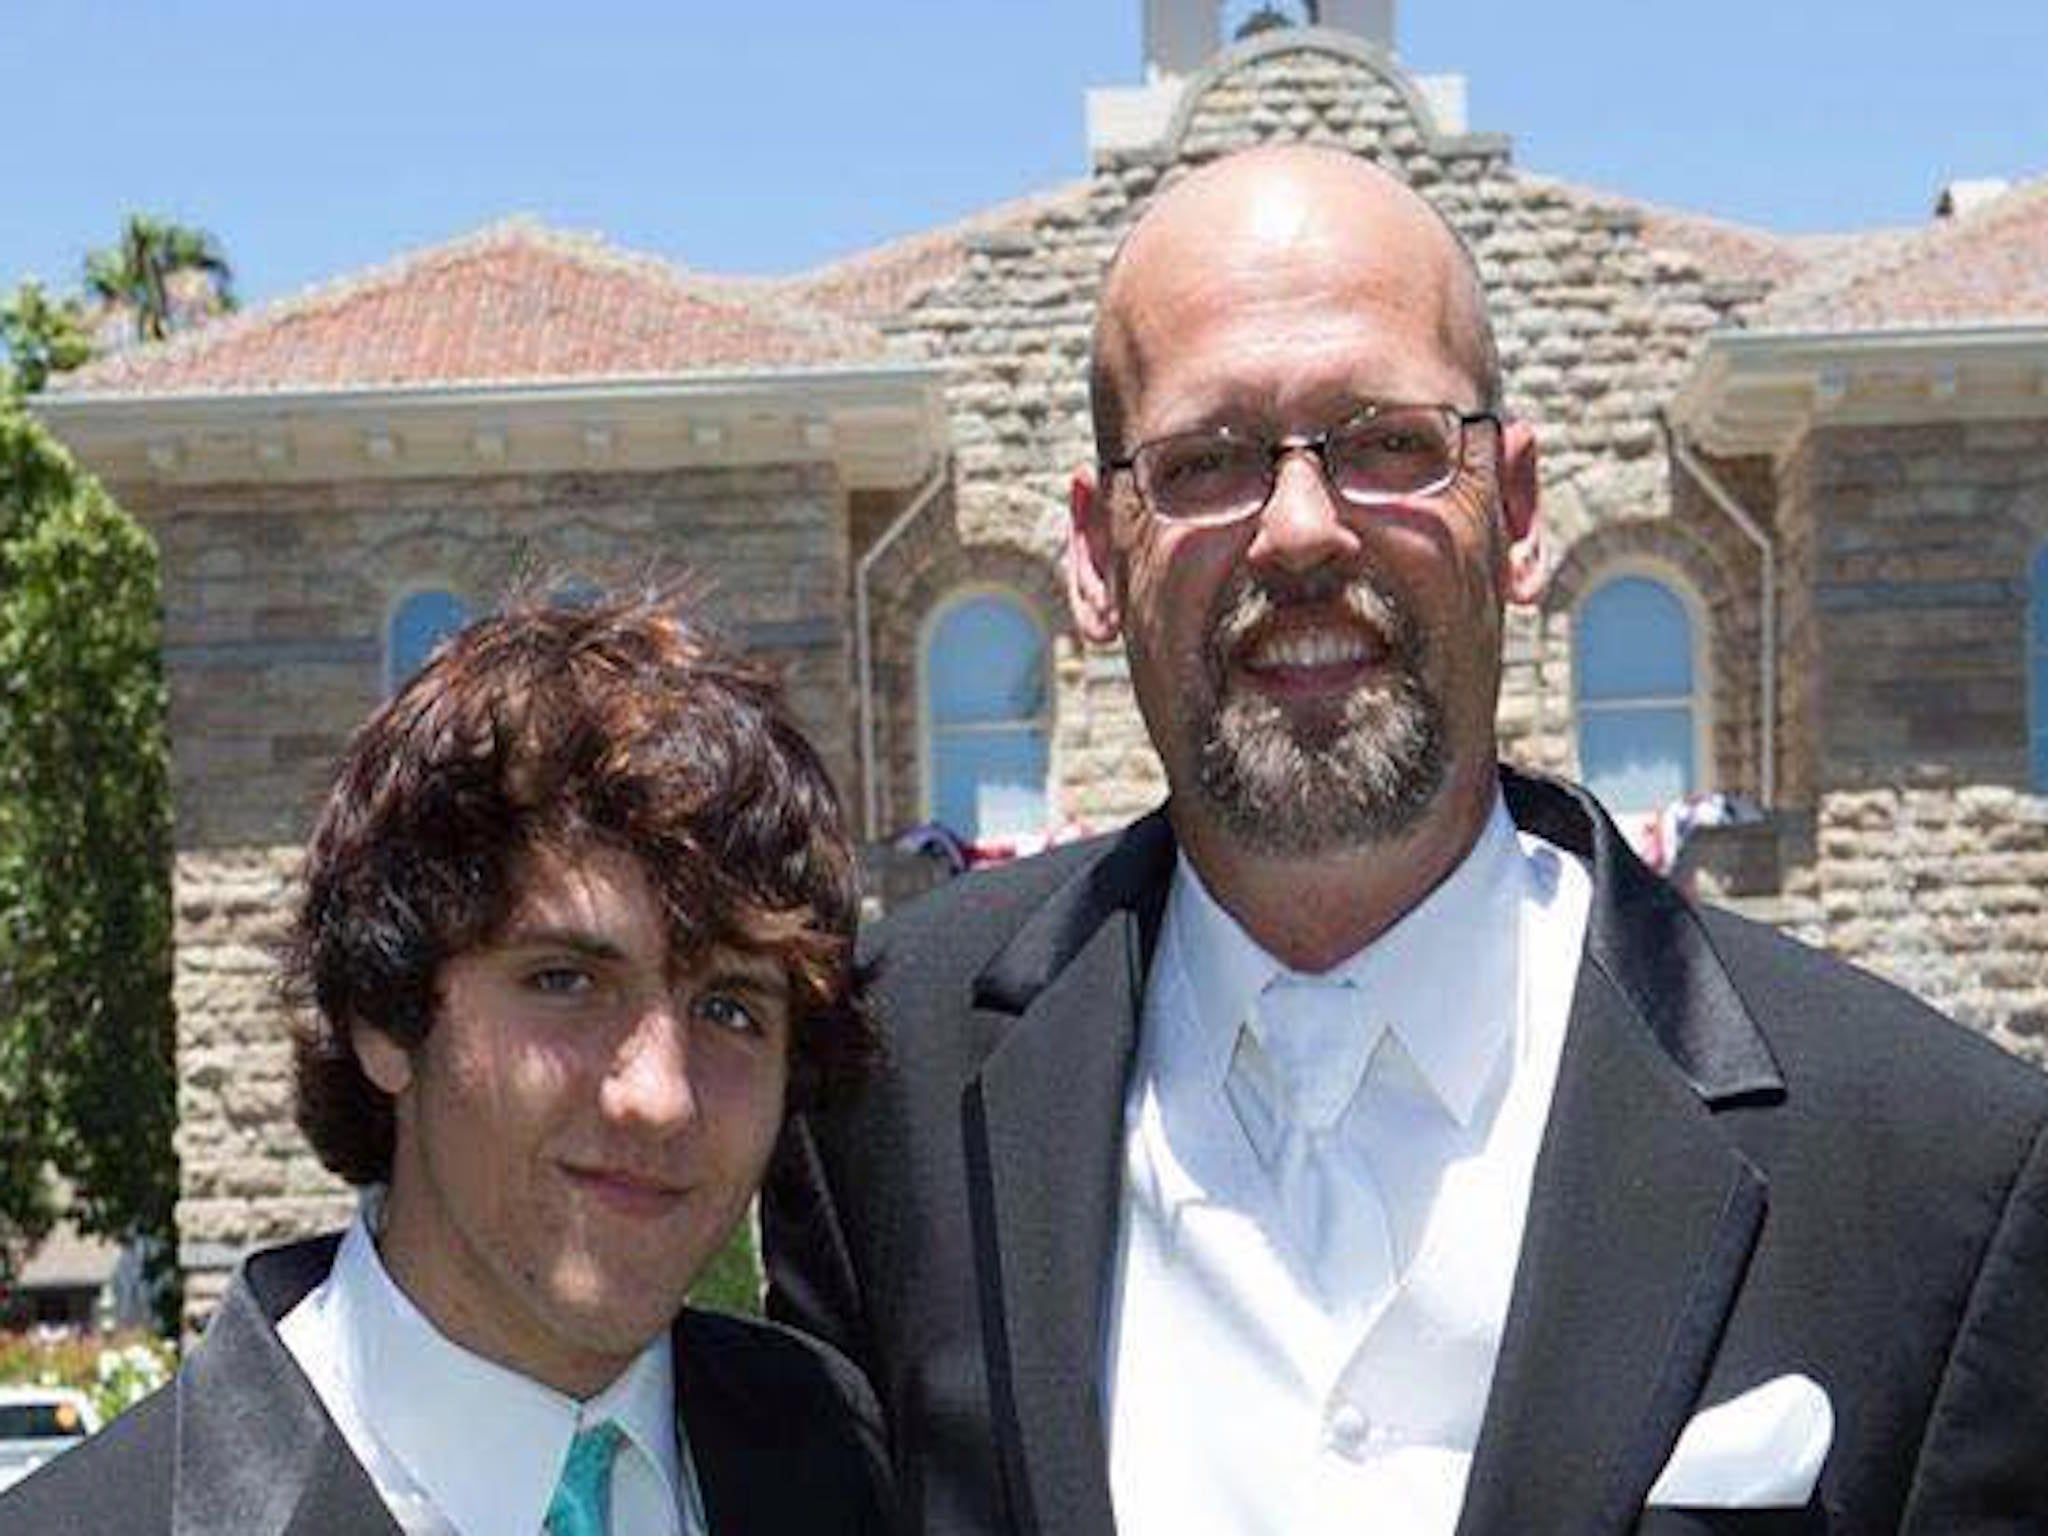 Adam Kizer: Bullied teenager who killed himself donated organs that